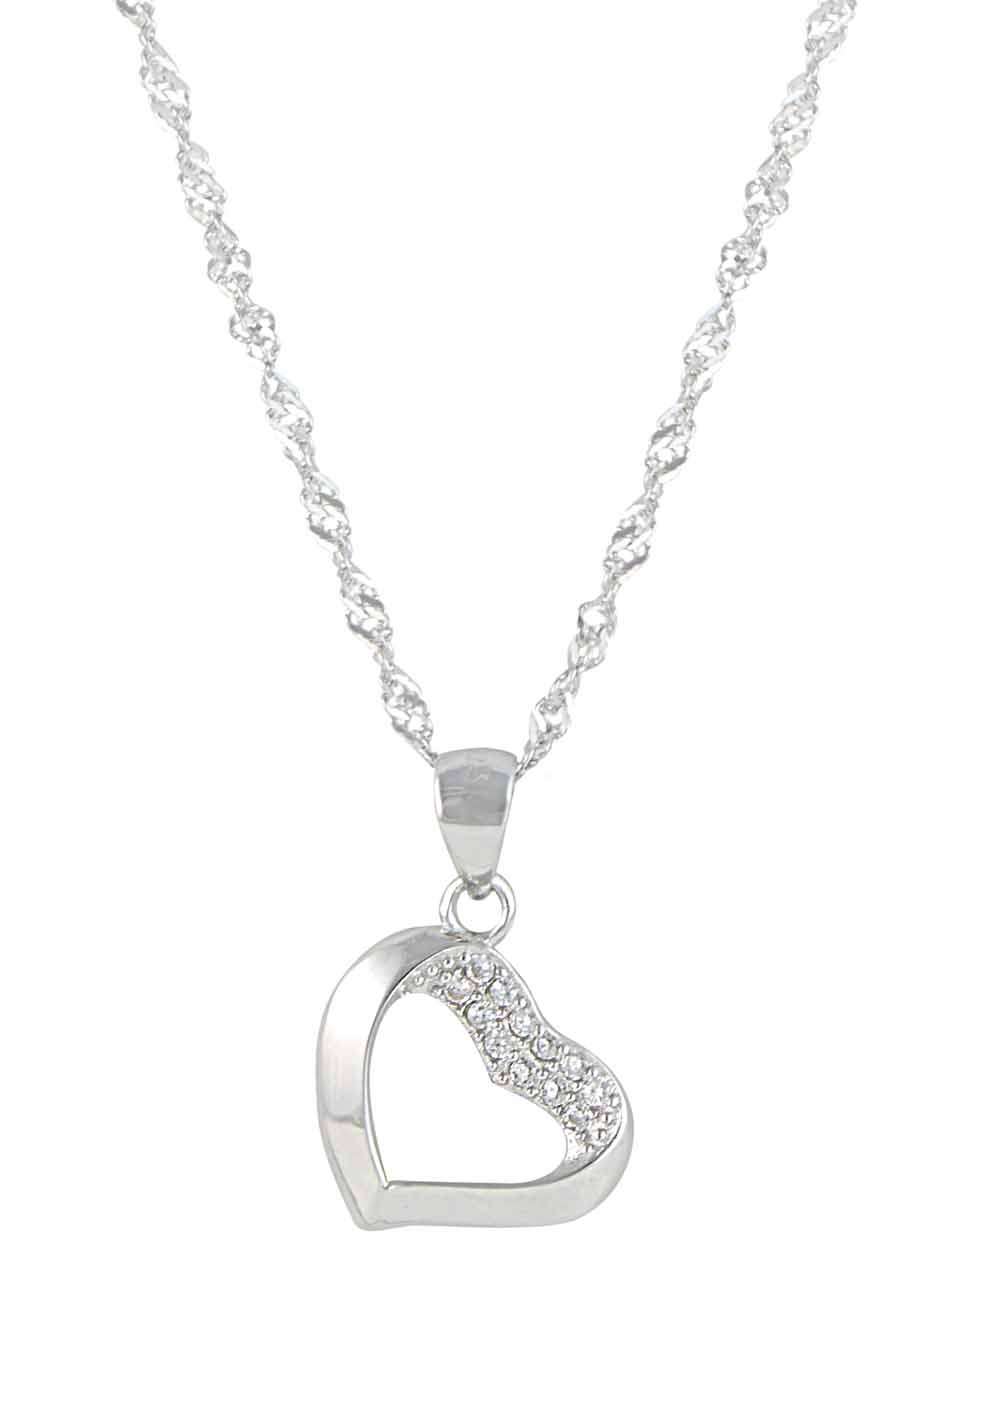 Open Sterling Silver Heart Necklace